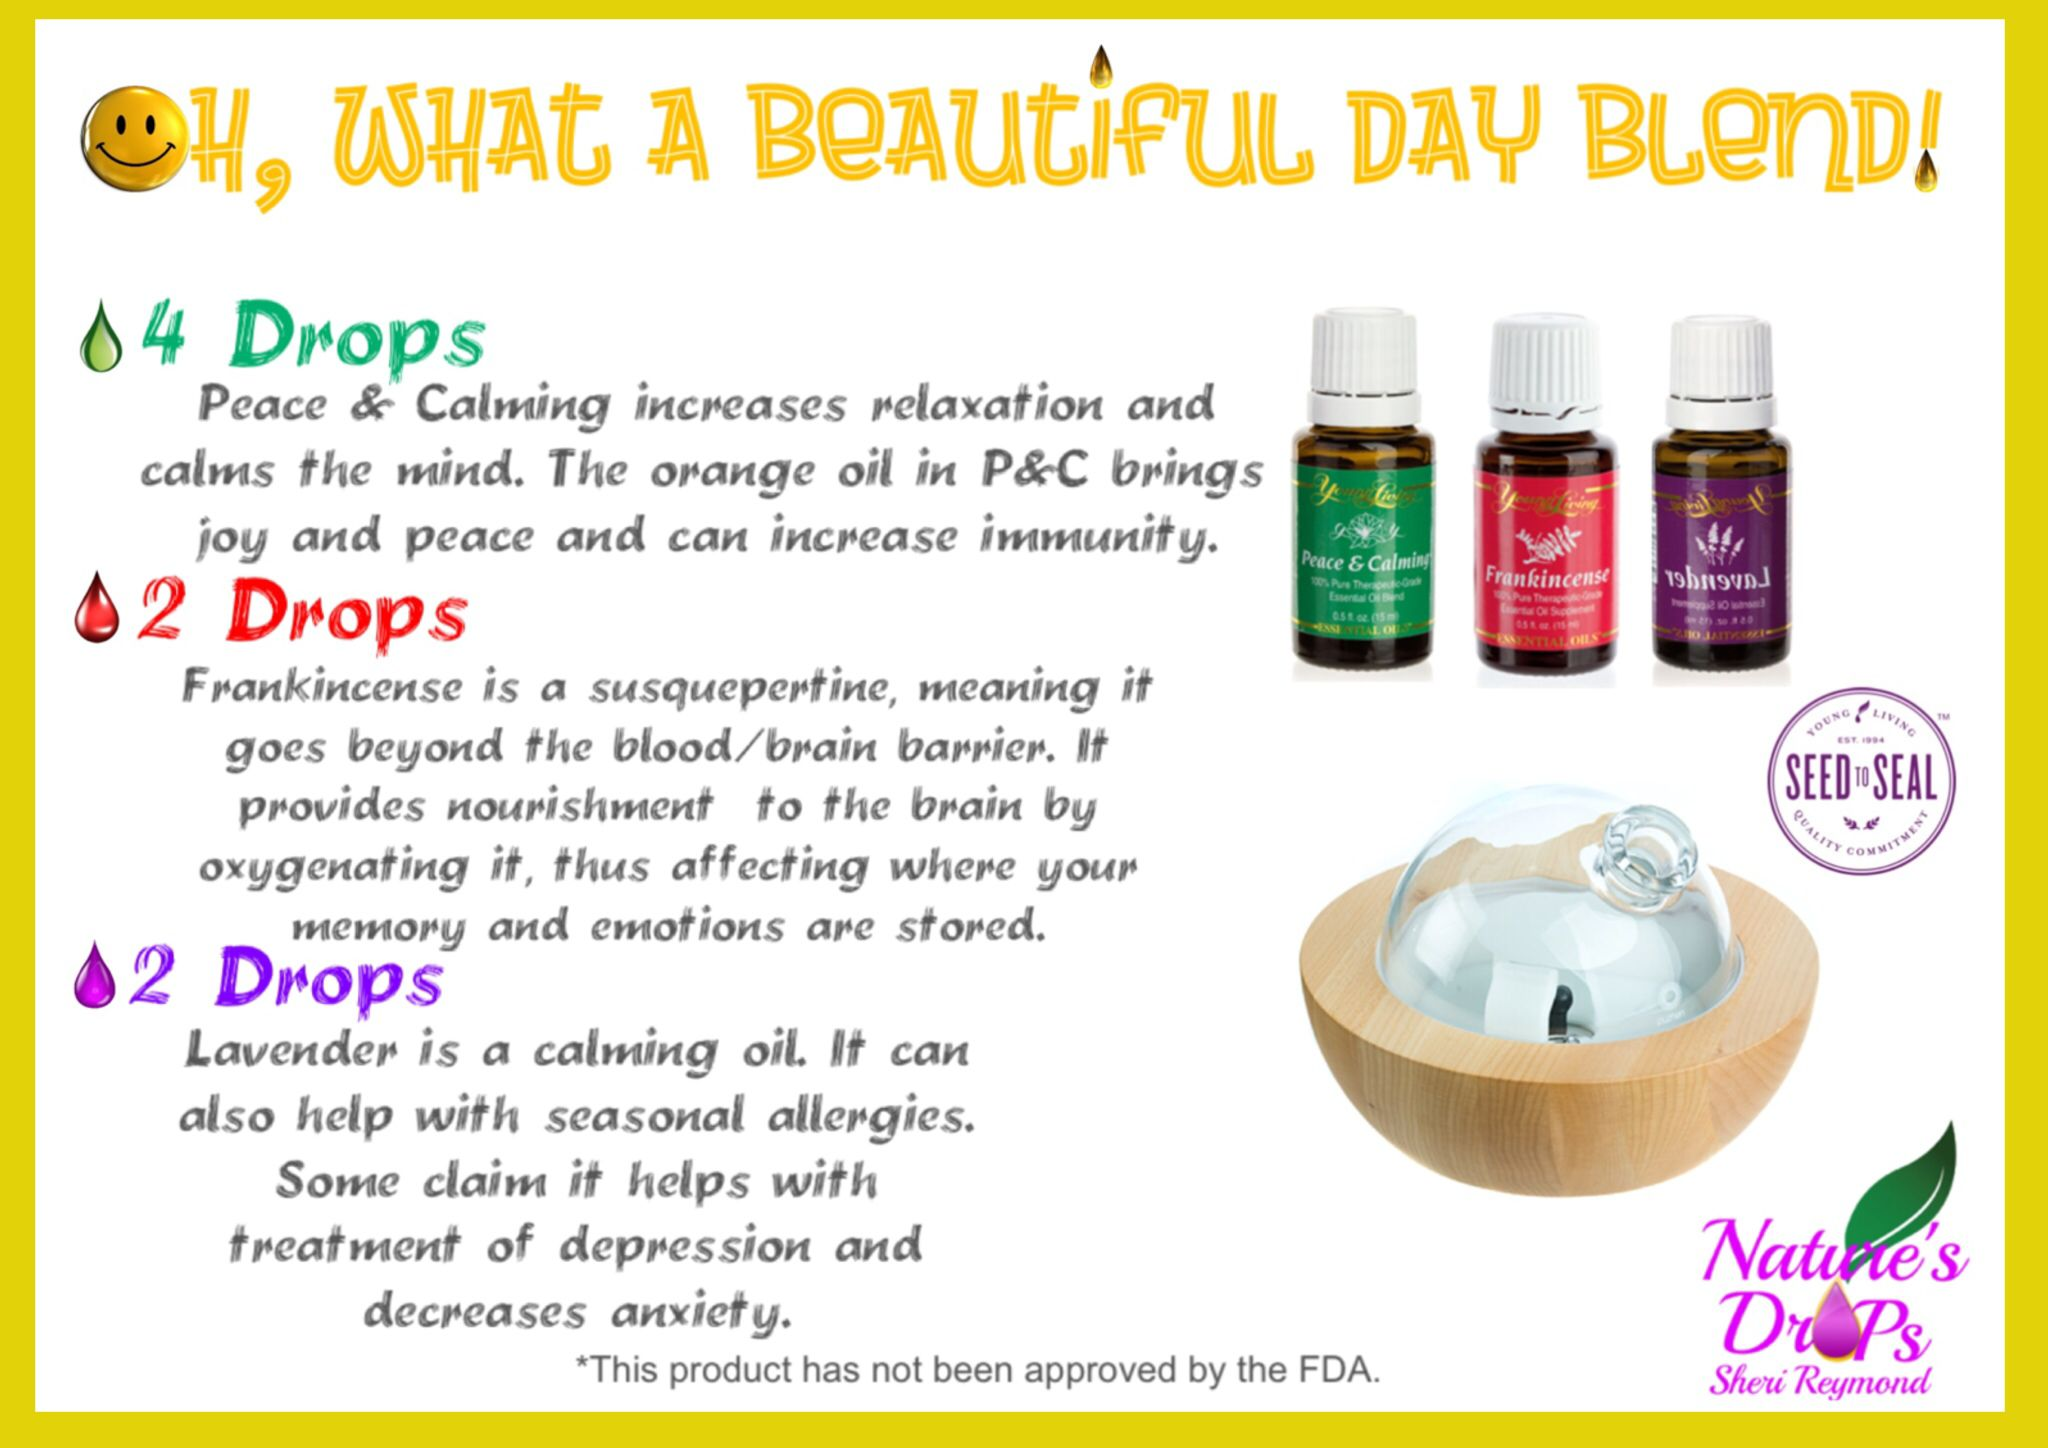 Relaxing and comforting blend to diffuse. https://www.facebook.com/NATURESDROPS